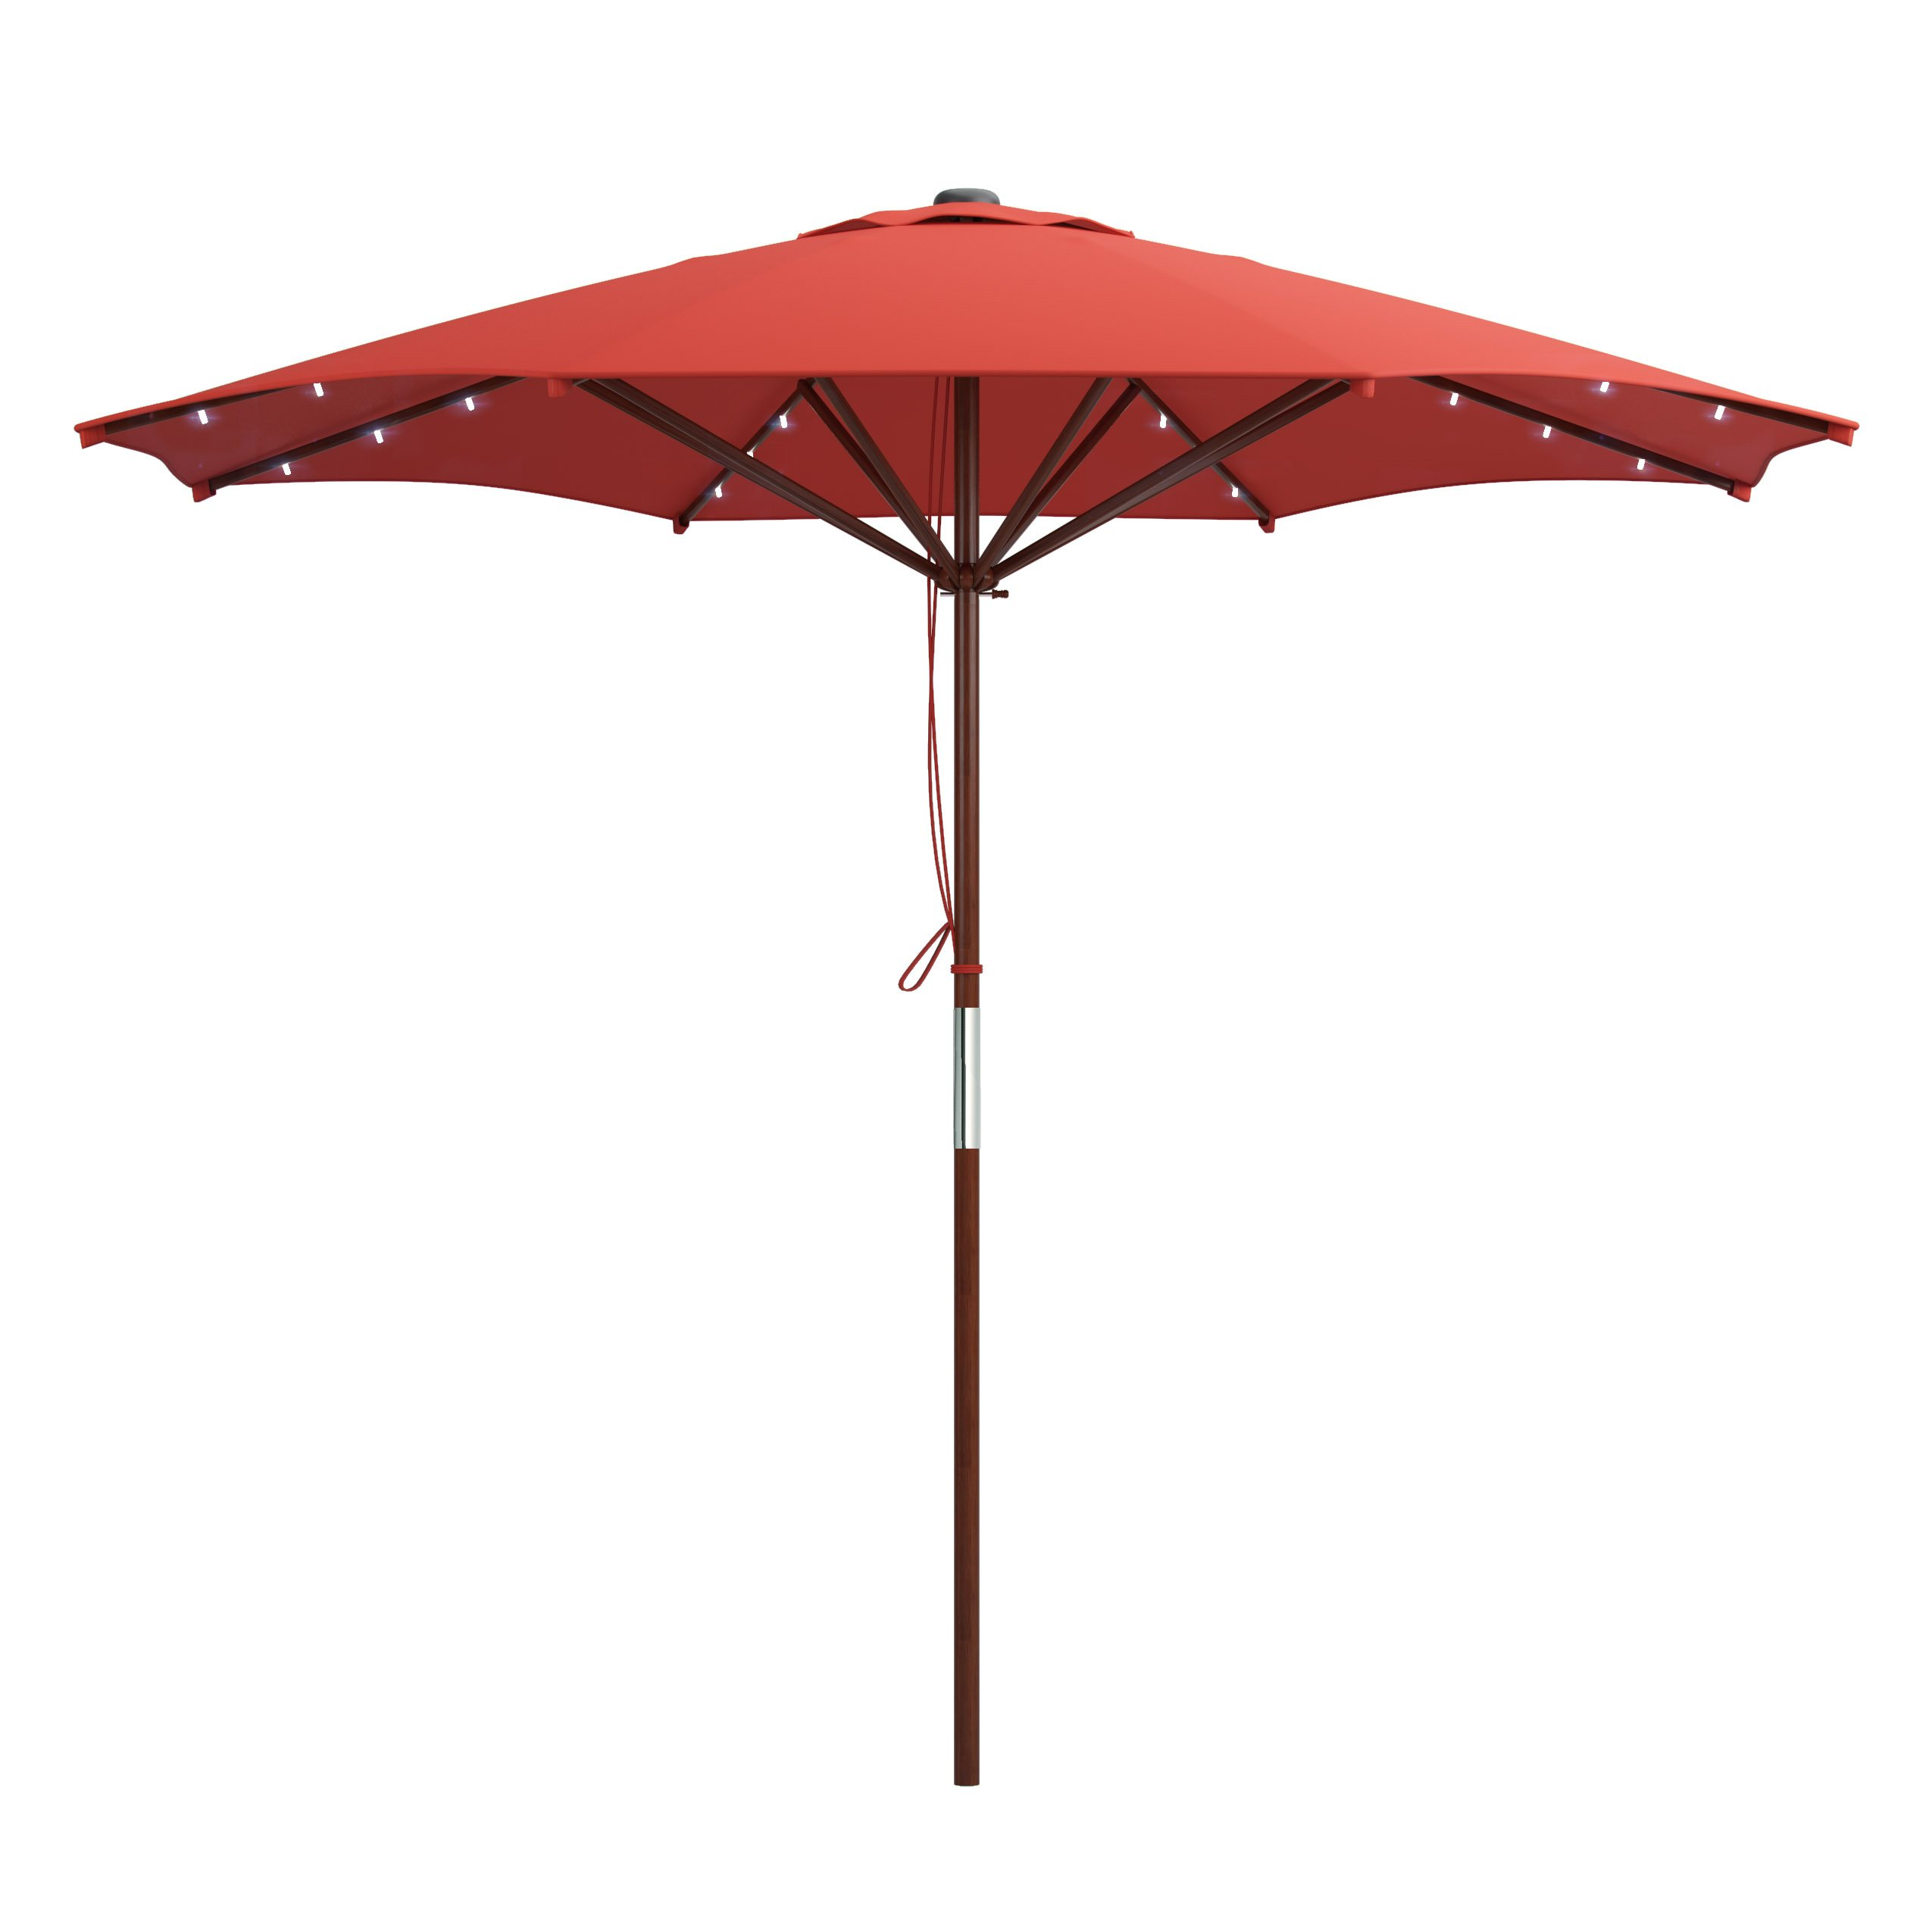 CorLiving PZT-754-U Patio Umbrella with Solar Power LED Lights, Red